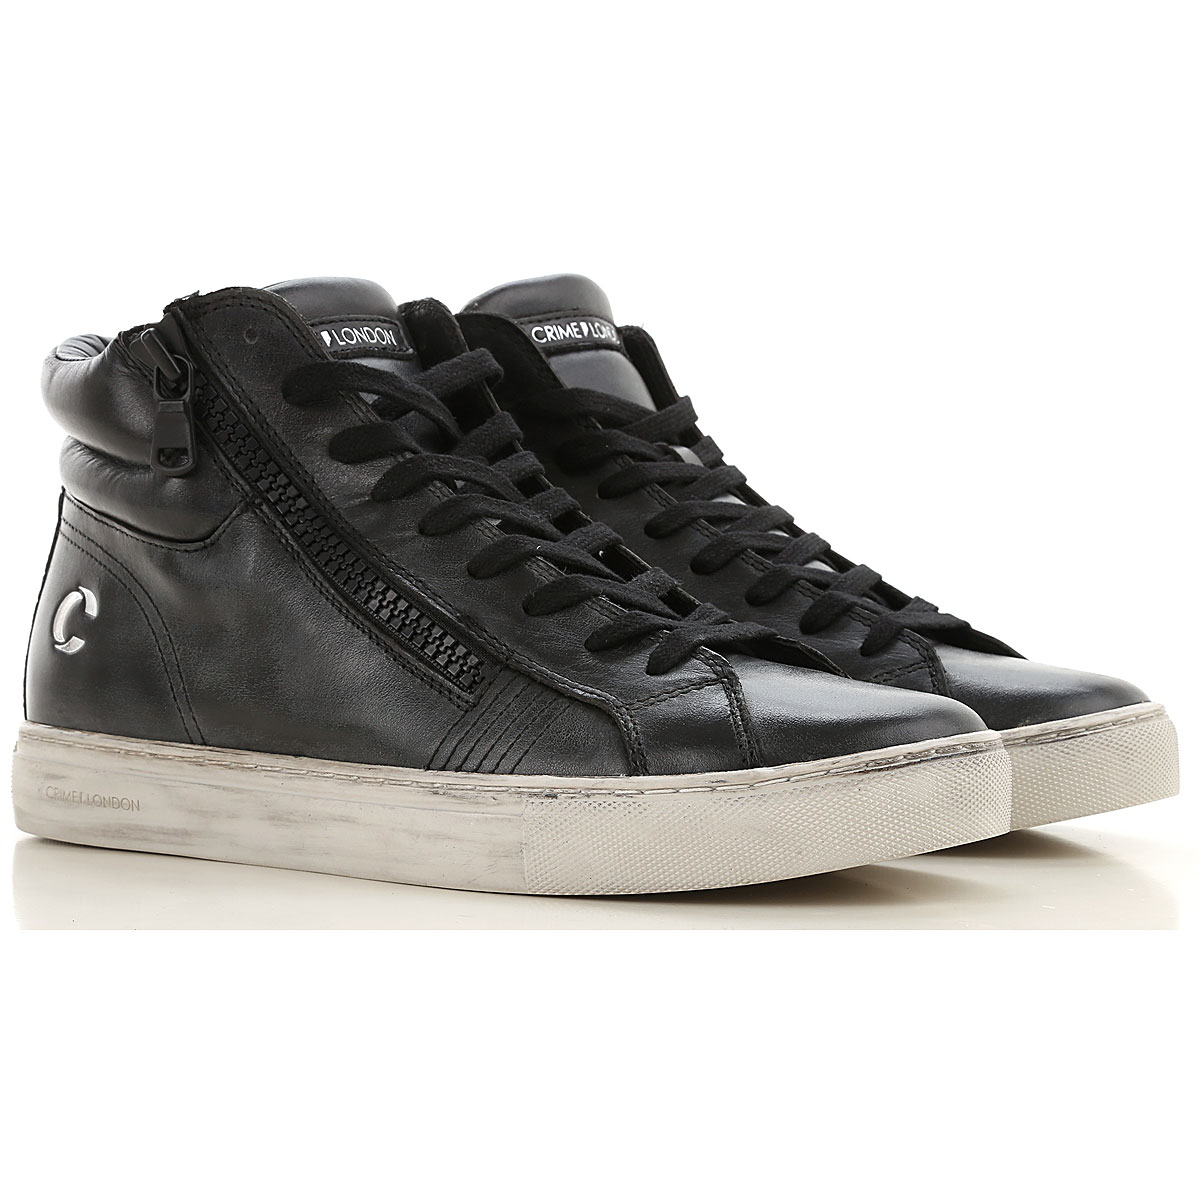 Crime Sneakers for Men On Sale, Black, Leather, 2019, 10 10.5 11.5 8 9